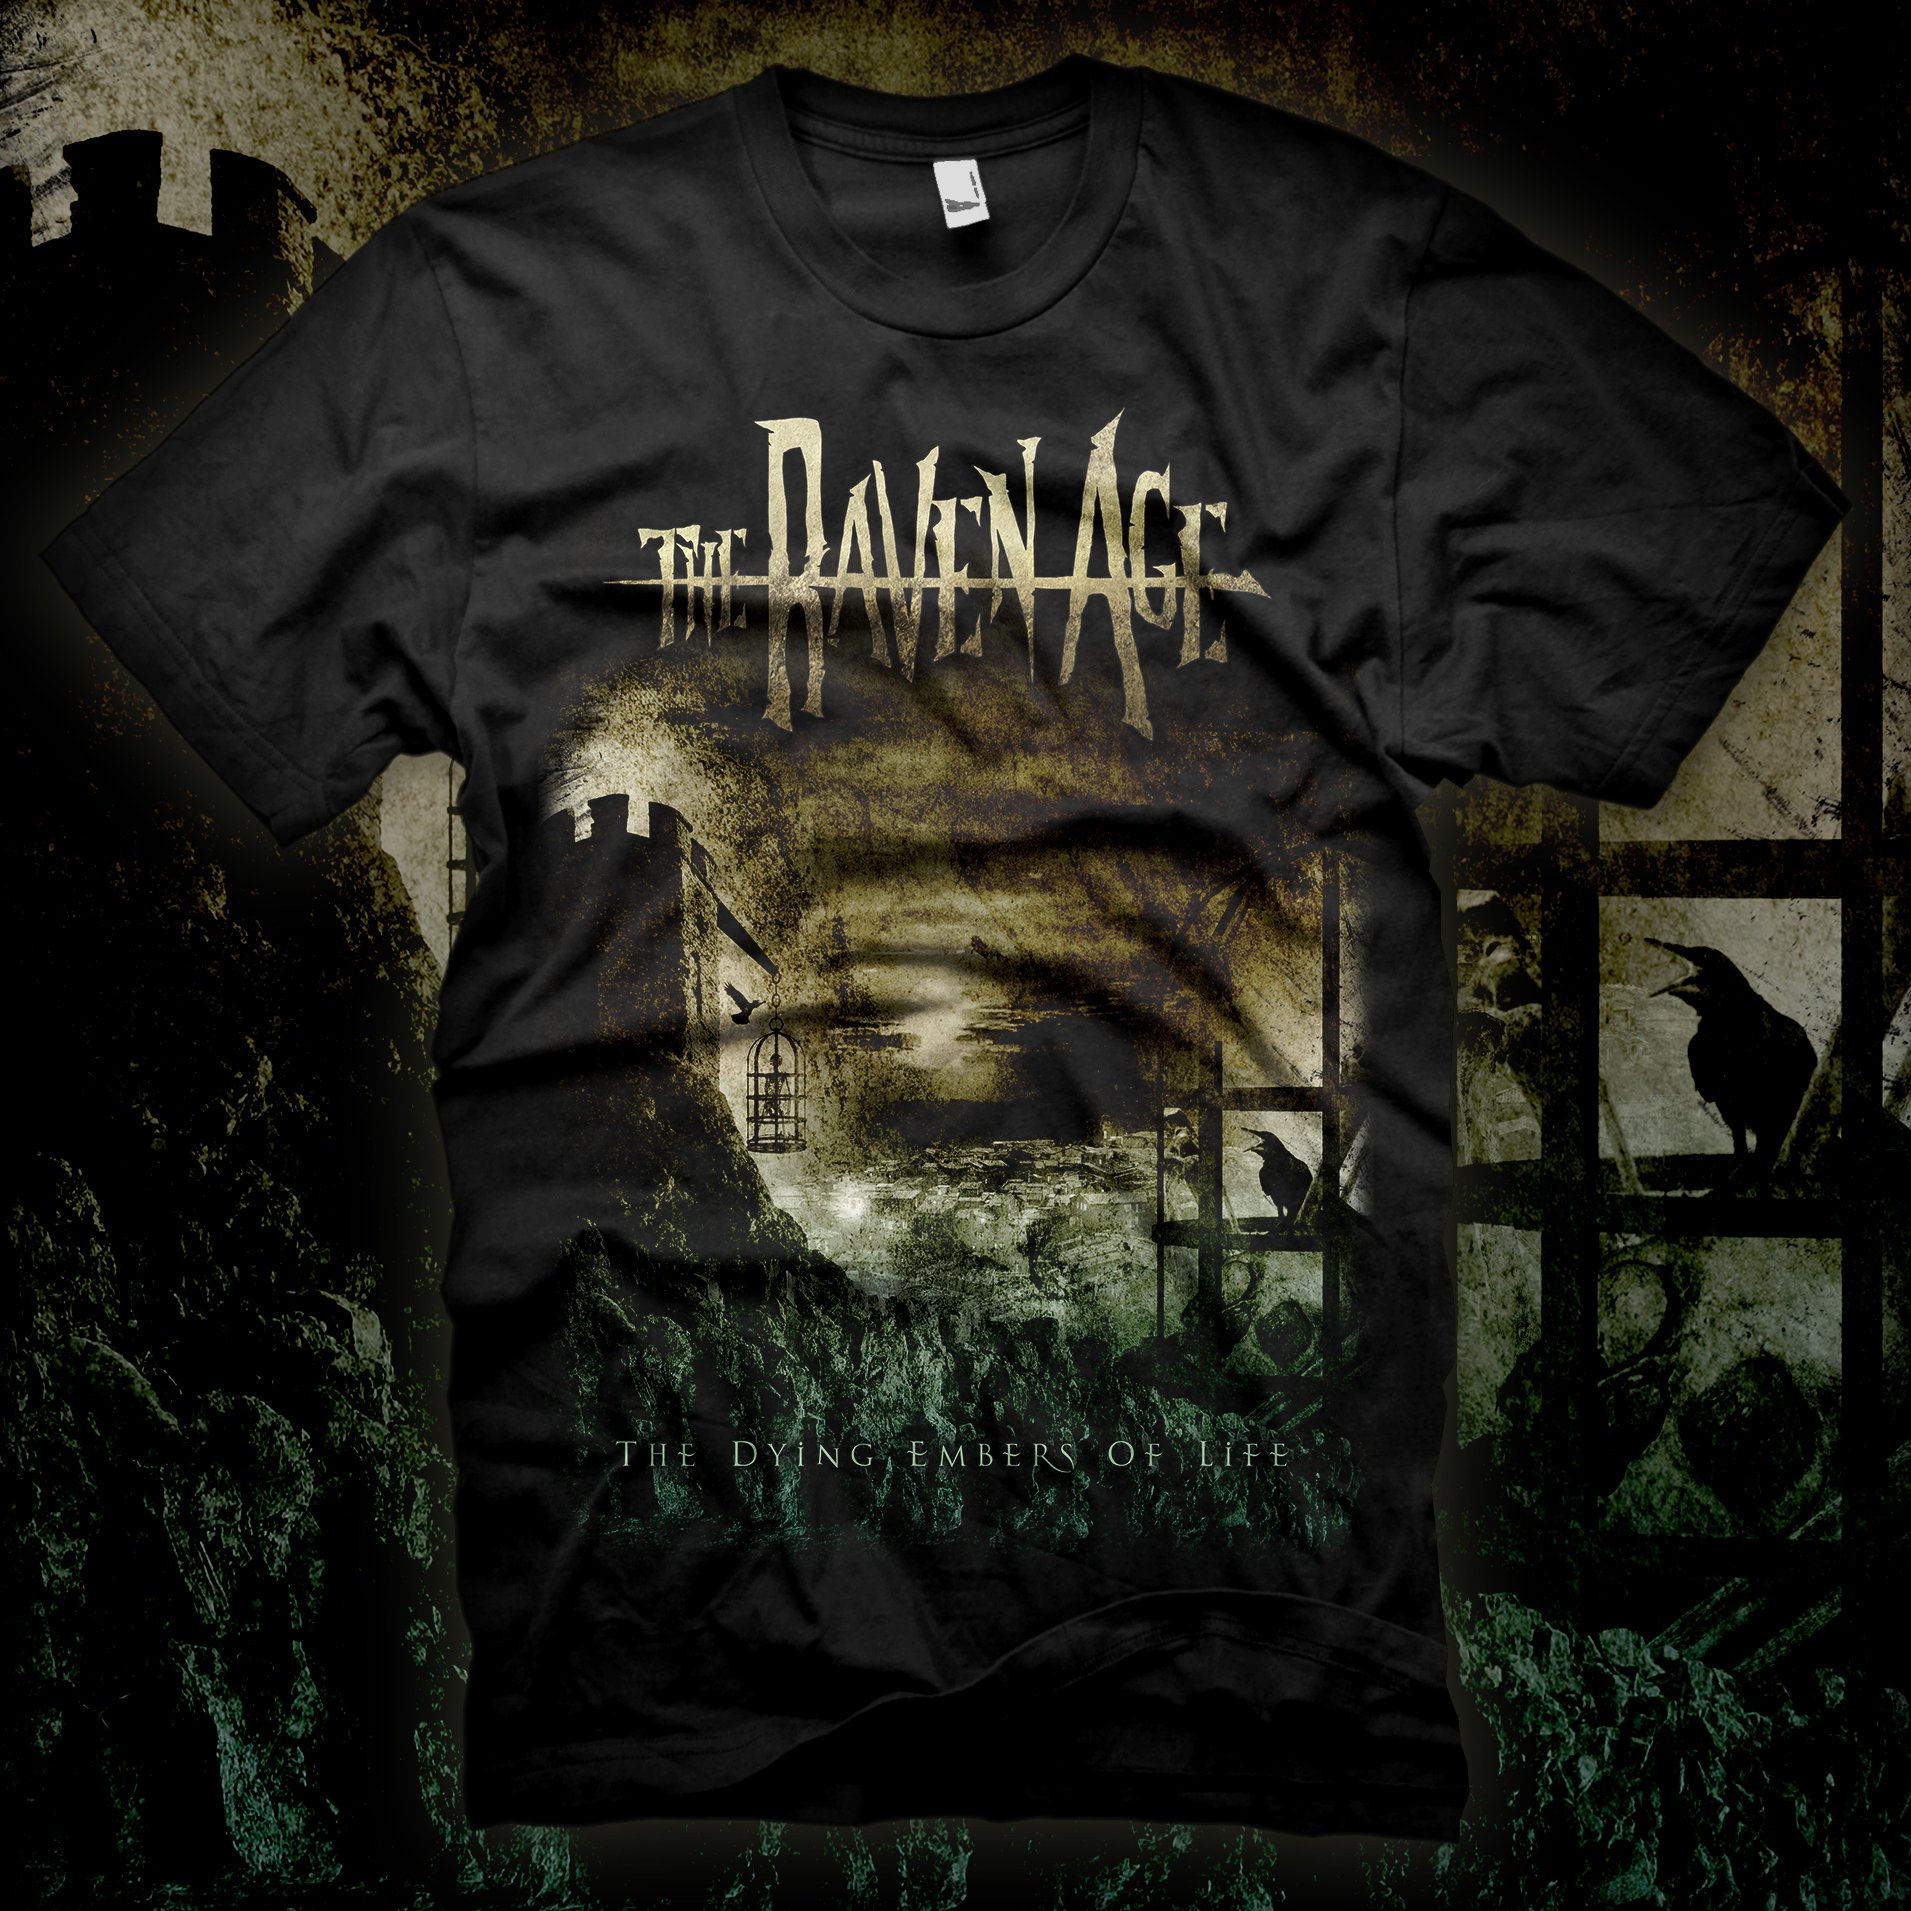 The Dying Embers Of Life - T-shirt Black - The Raven Age